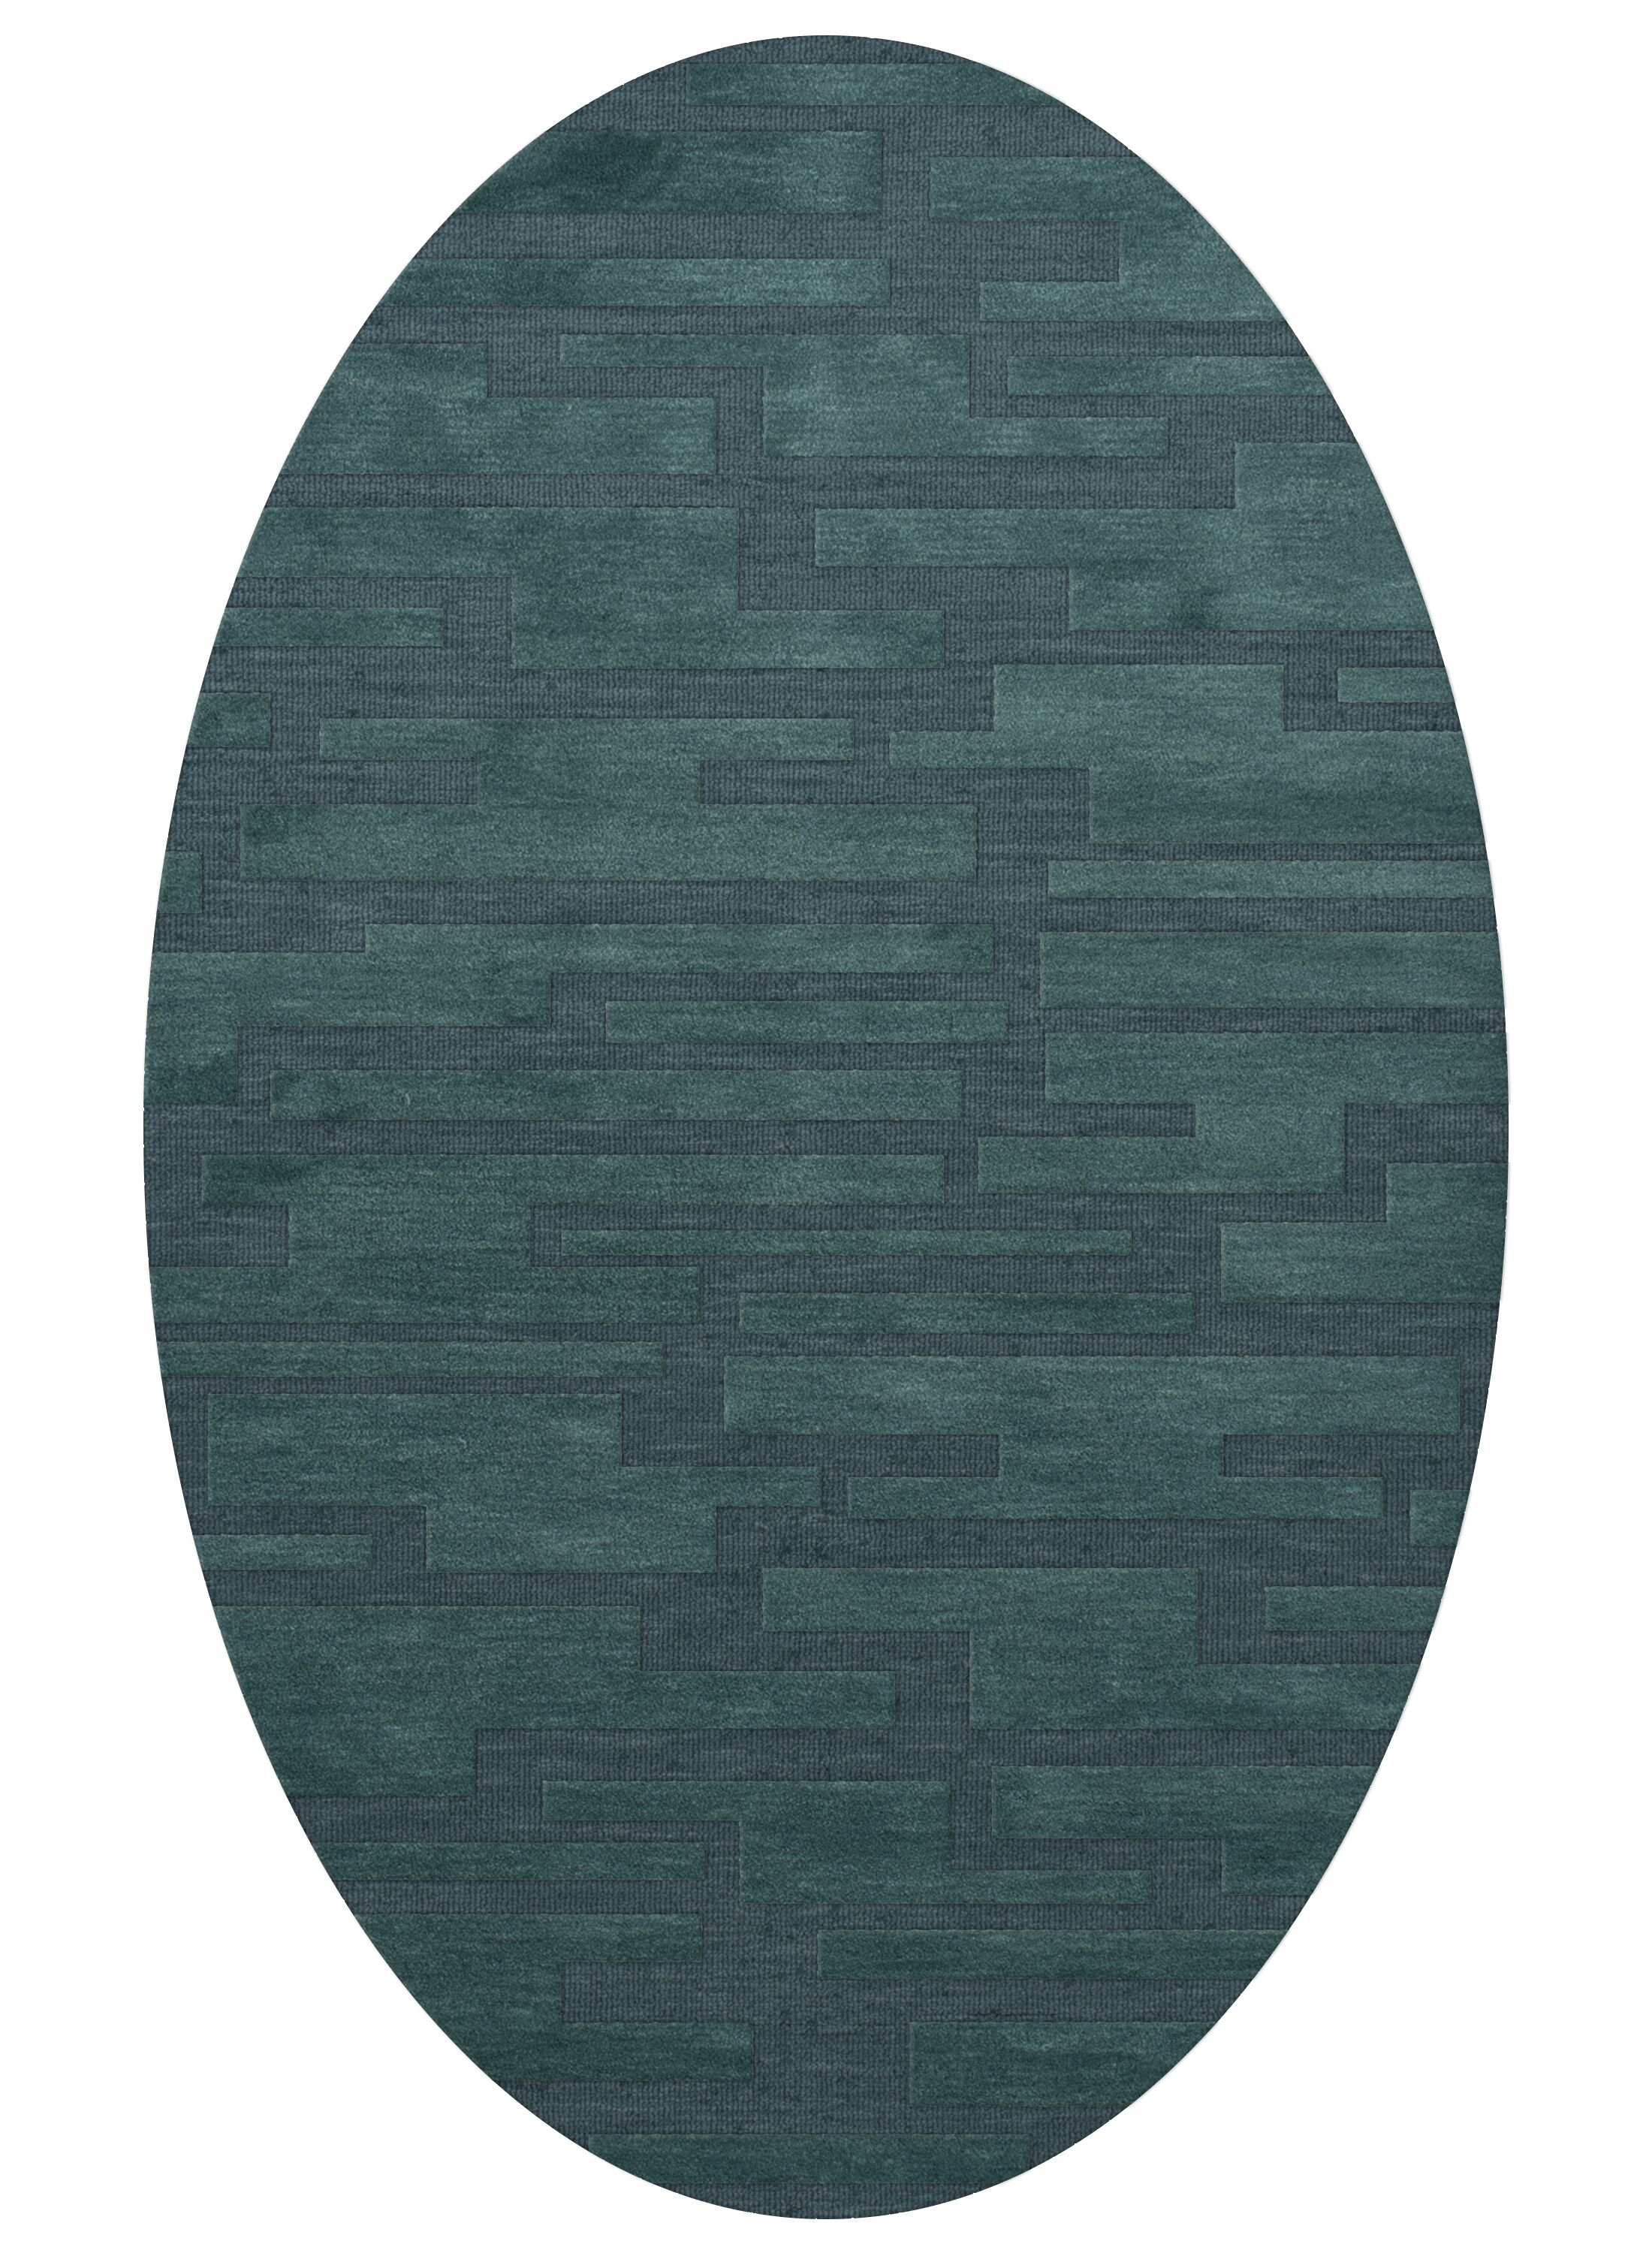 Dover Teal Area Rug Rug Size: Oval 10' x 14'